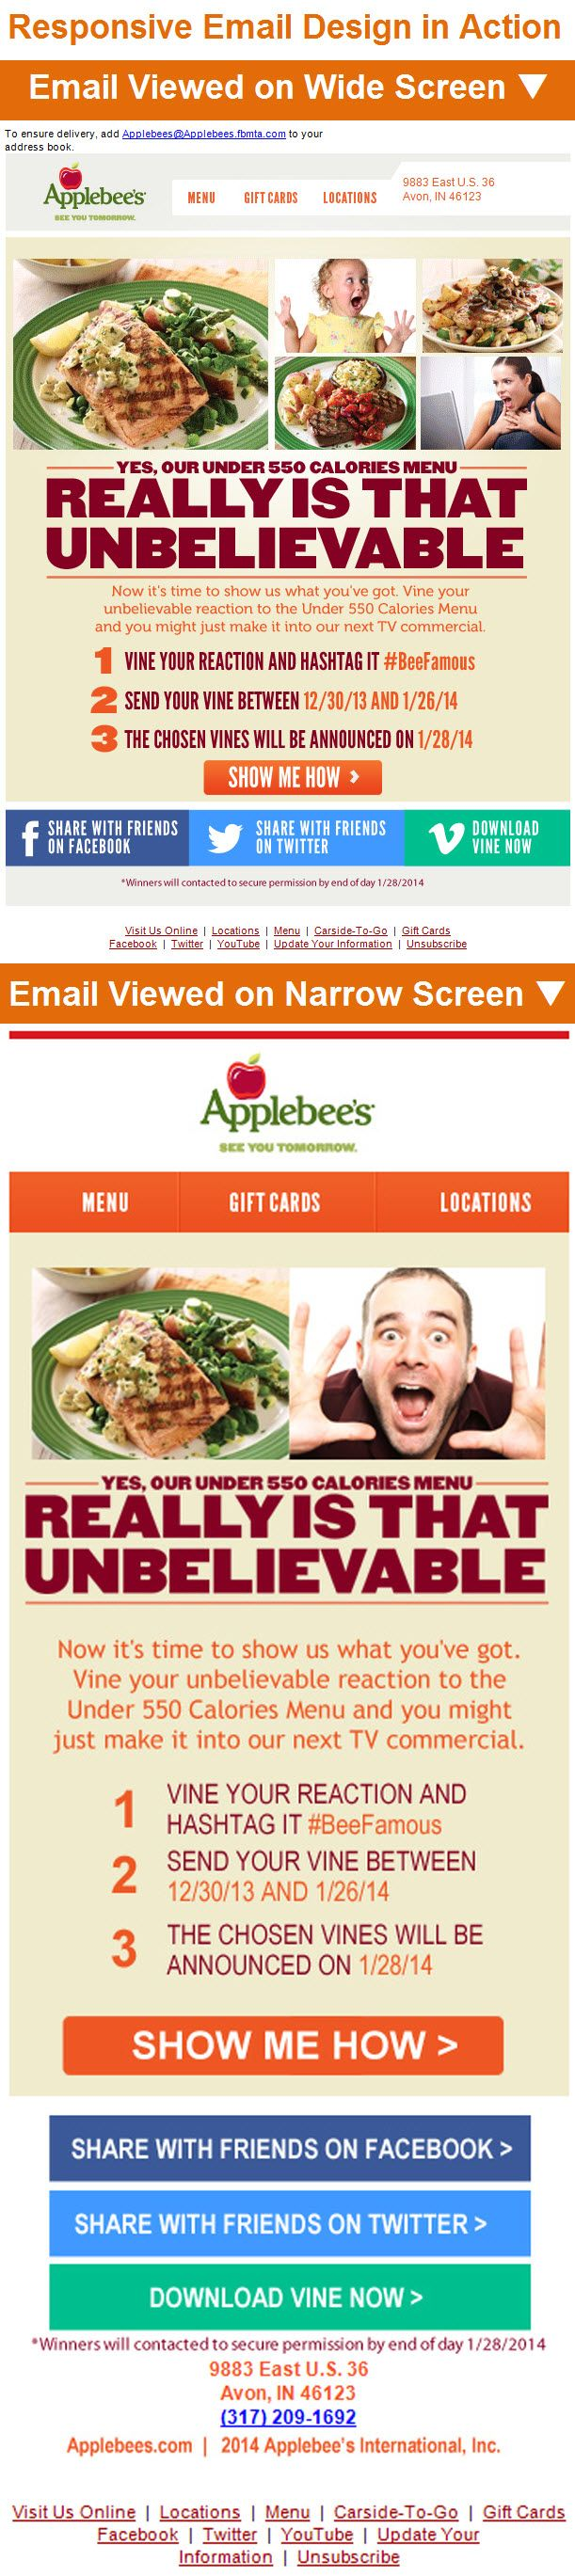 Applebee's >> sent 1/21/14 >> Amanda, Don't miss your chance to be in our next commercial >> This responsive email from Applebee's stands out by welcoming subscribers to be a part of the excitement around their Under 550 Calories Menu and, in particular, by using Vine to crowdsource content for their commercial. —Amanda Miller, Marketing Consultant, Salesforce ExactTarget Marketing Cloud